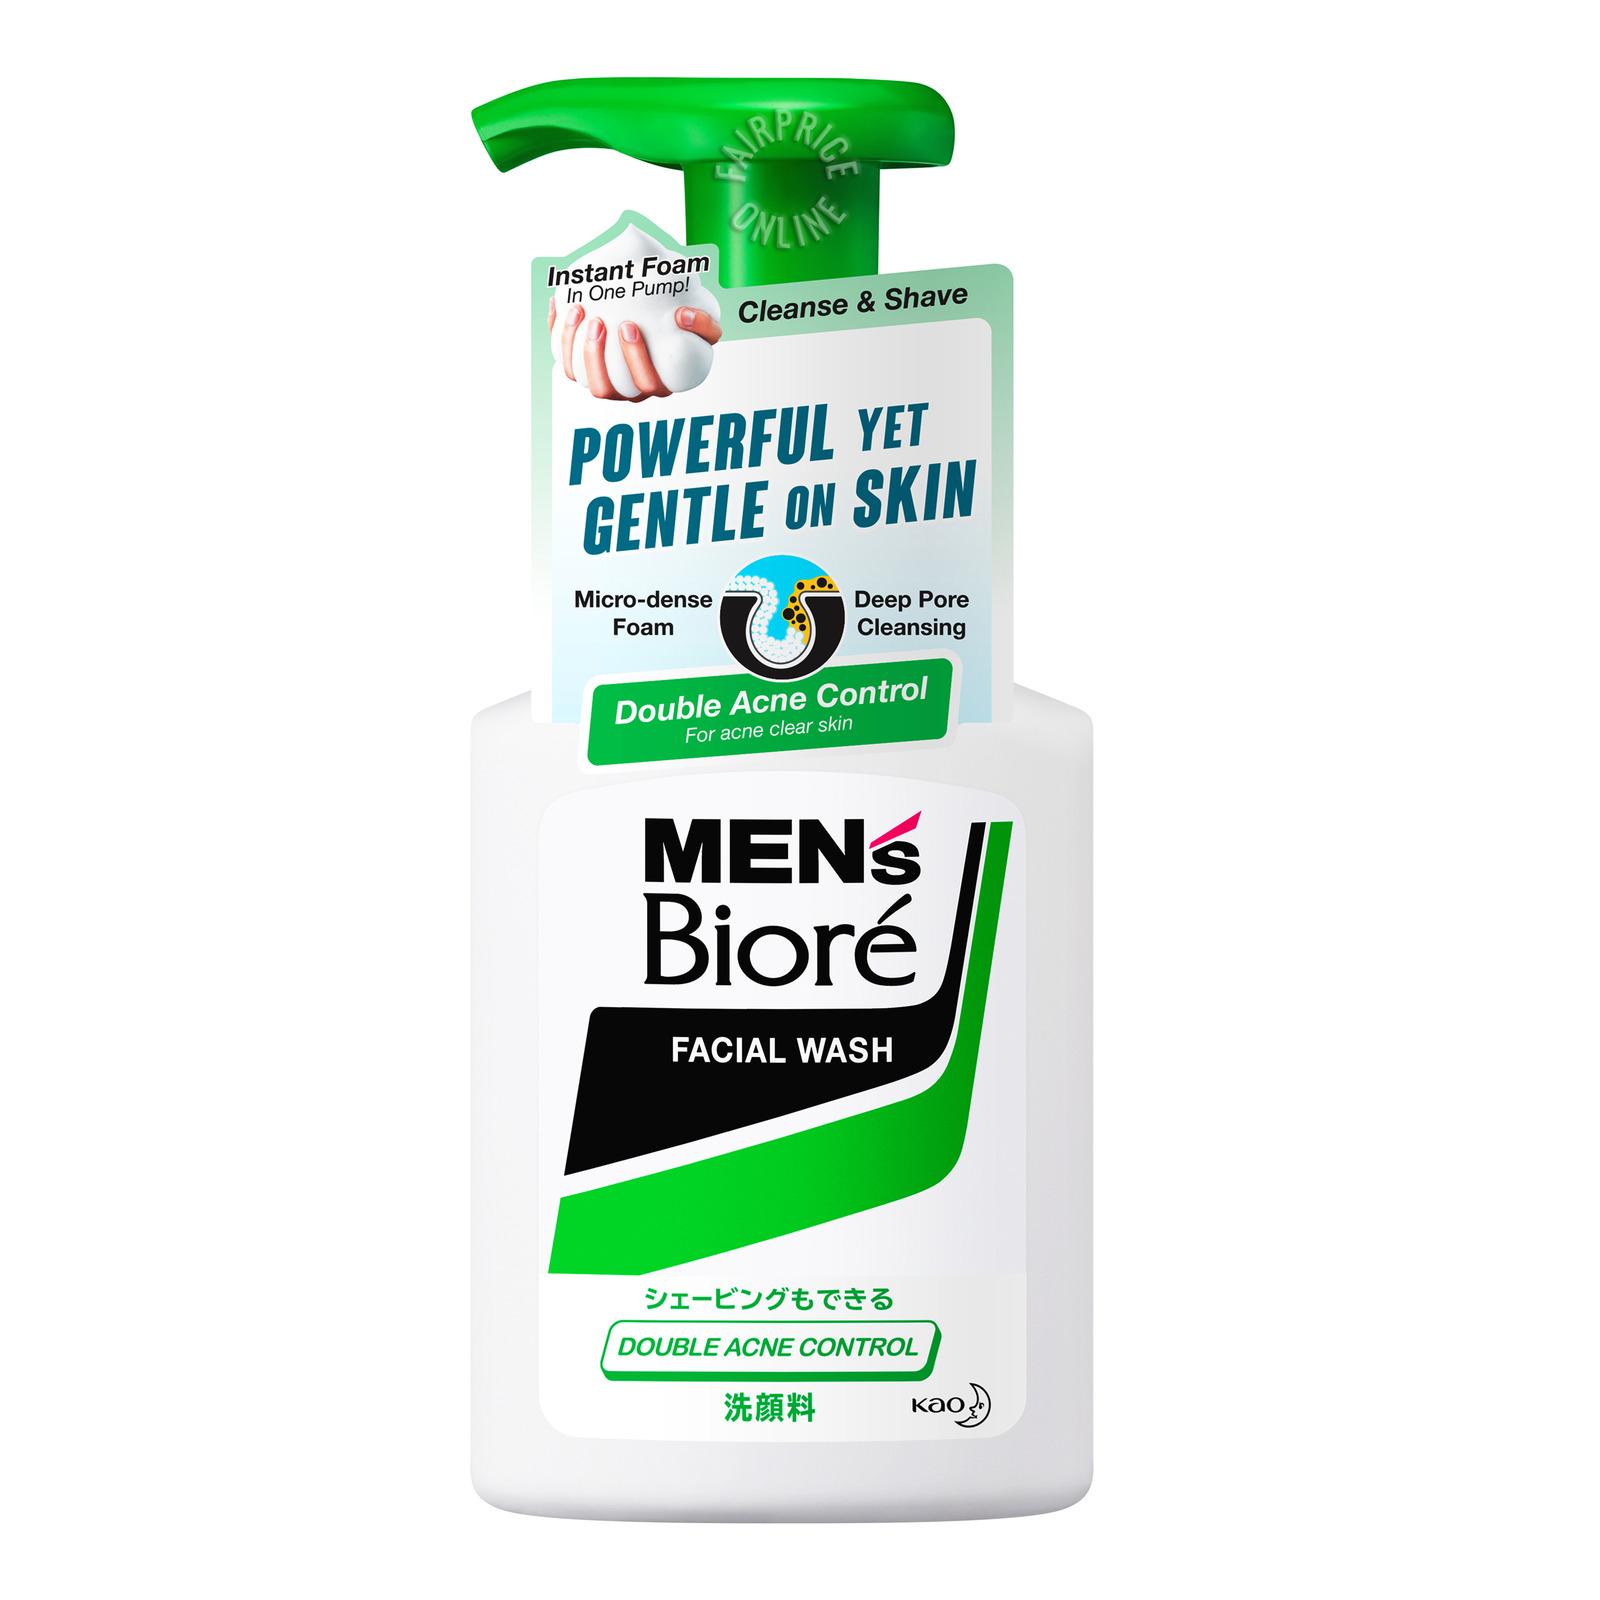 Biore Men's Instant Foaming Facial Wash - Double Acne Control